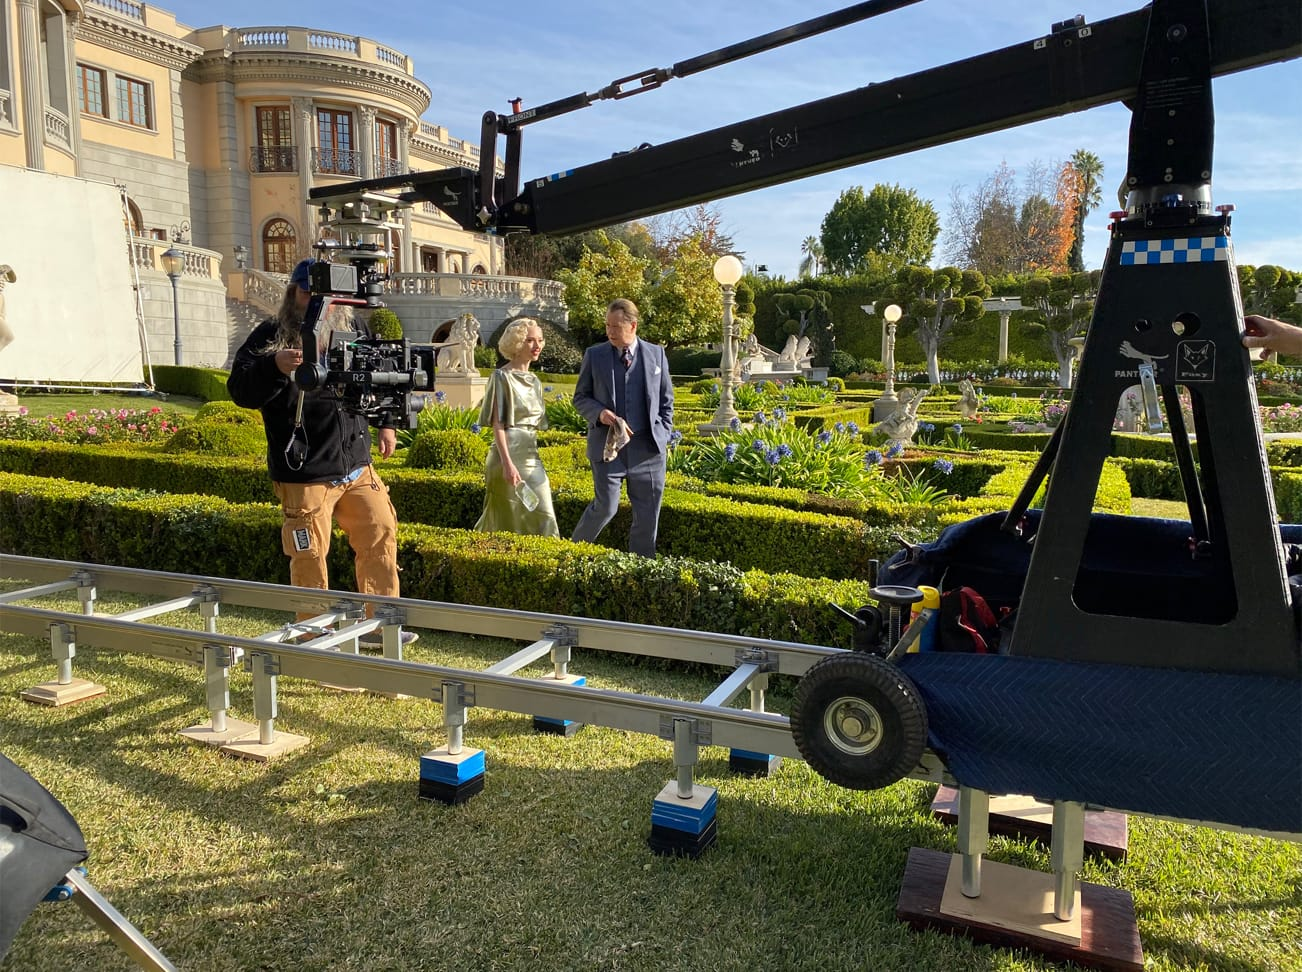 Seyfried and Oldman stroll through the bright green manicured garden that stands in for the Hearst Castle grounds.